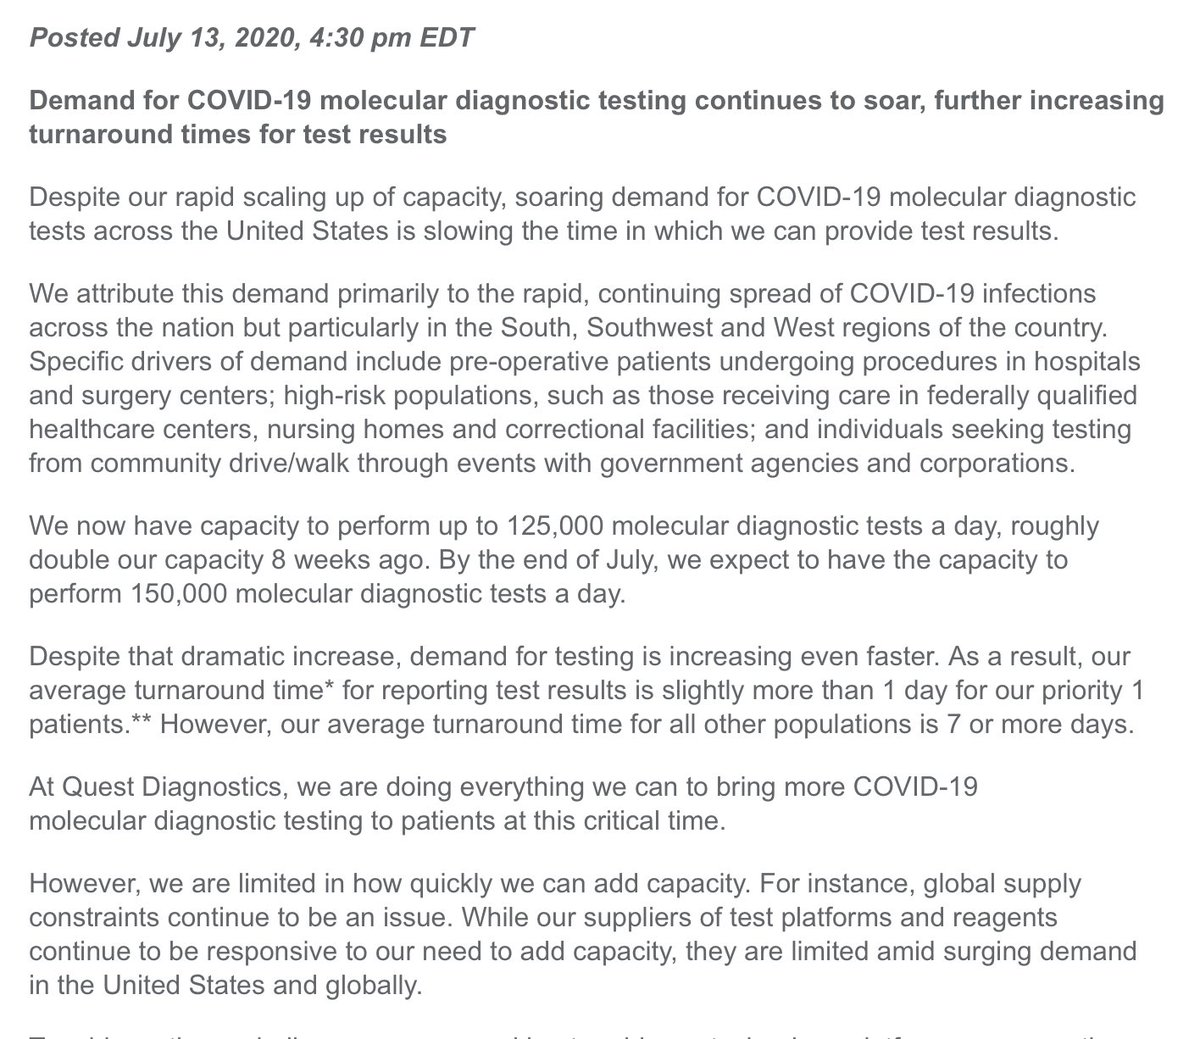 Quest Diagnostics says its average turnaround time for #COVID19 tests is now 7 or more days for non priority 1 patients https://t.co/zijoGqEeFk